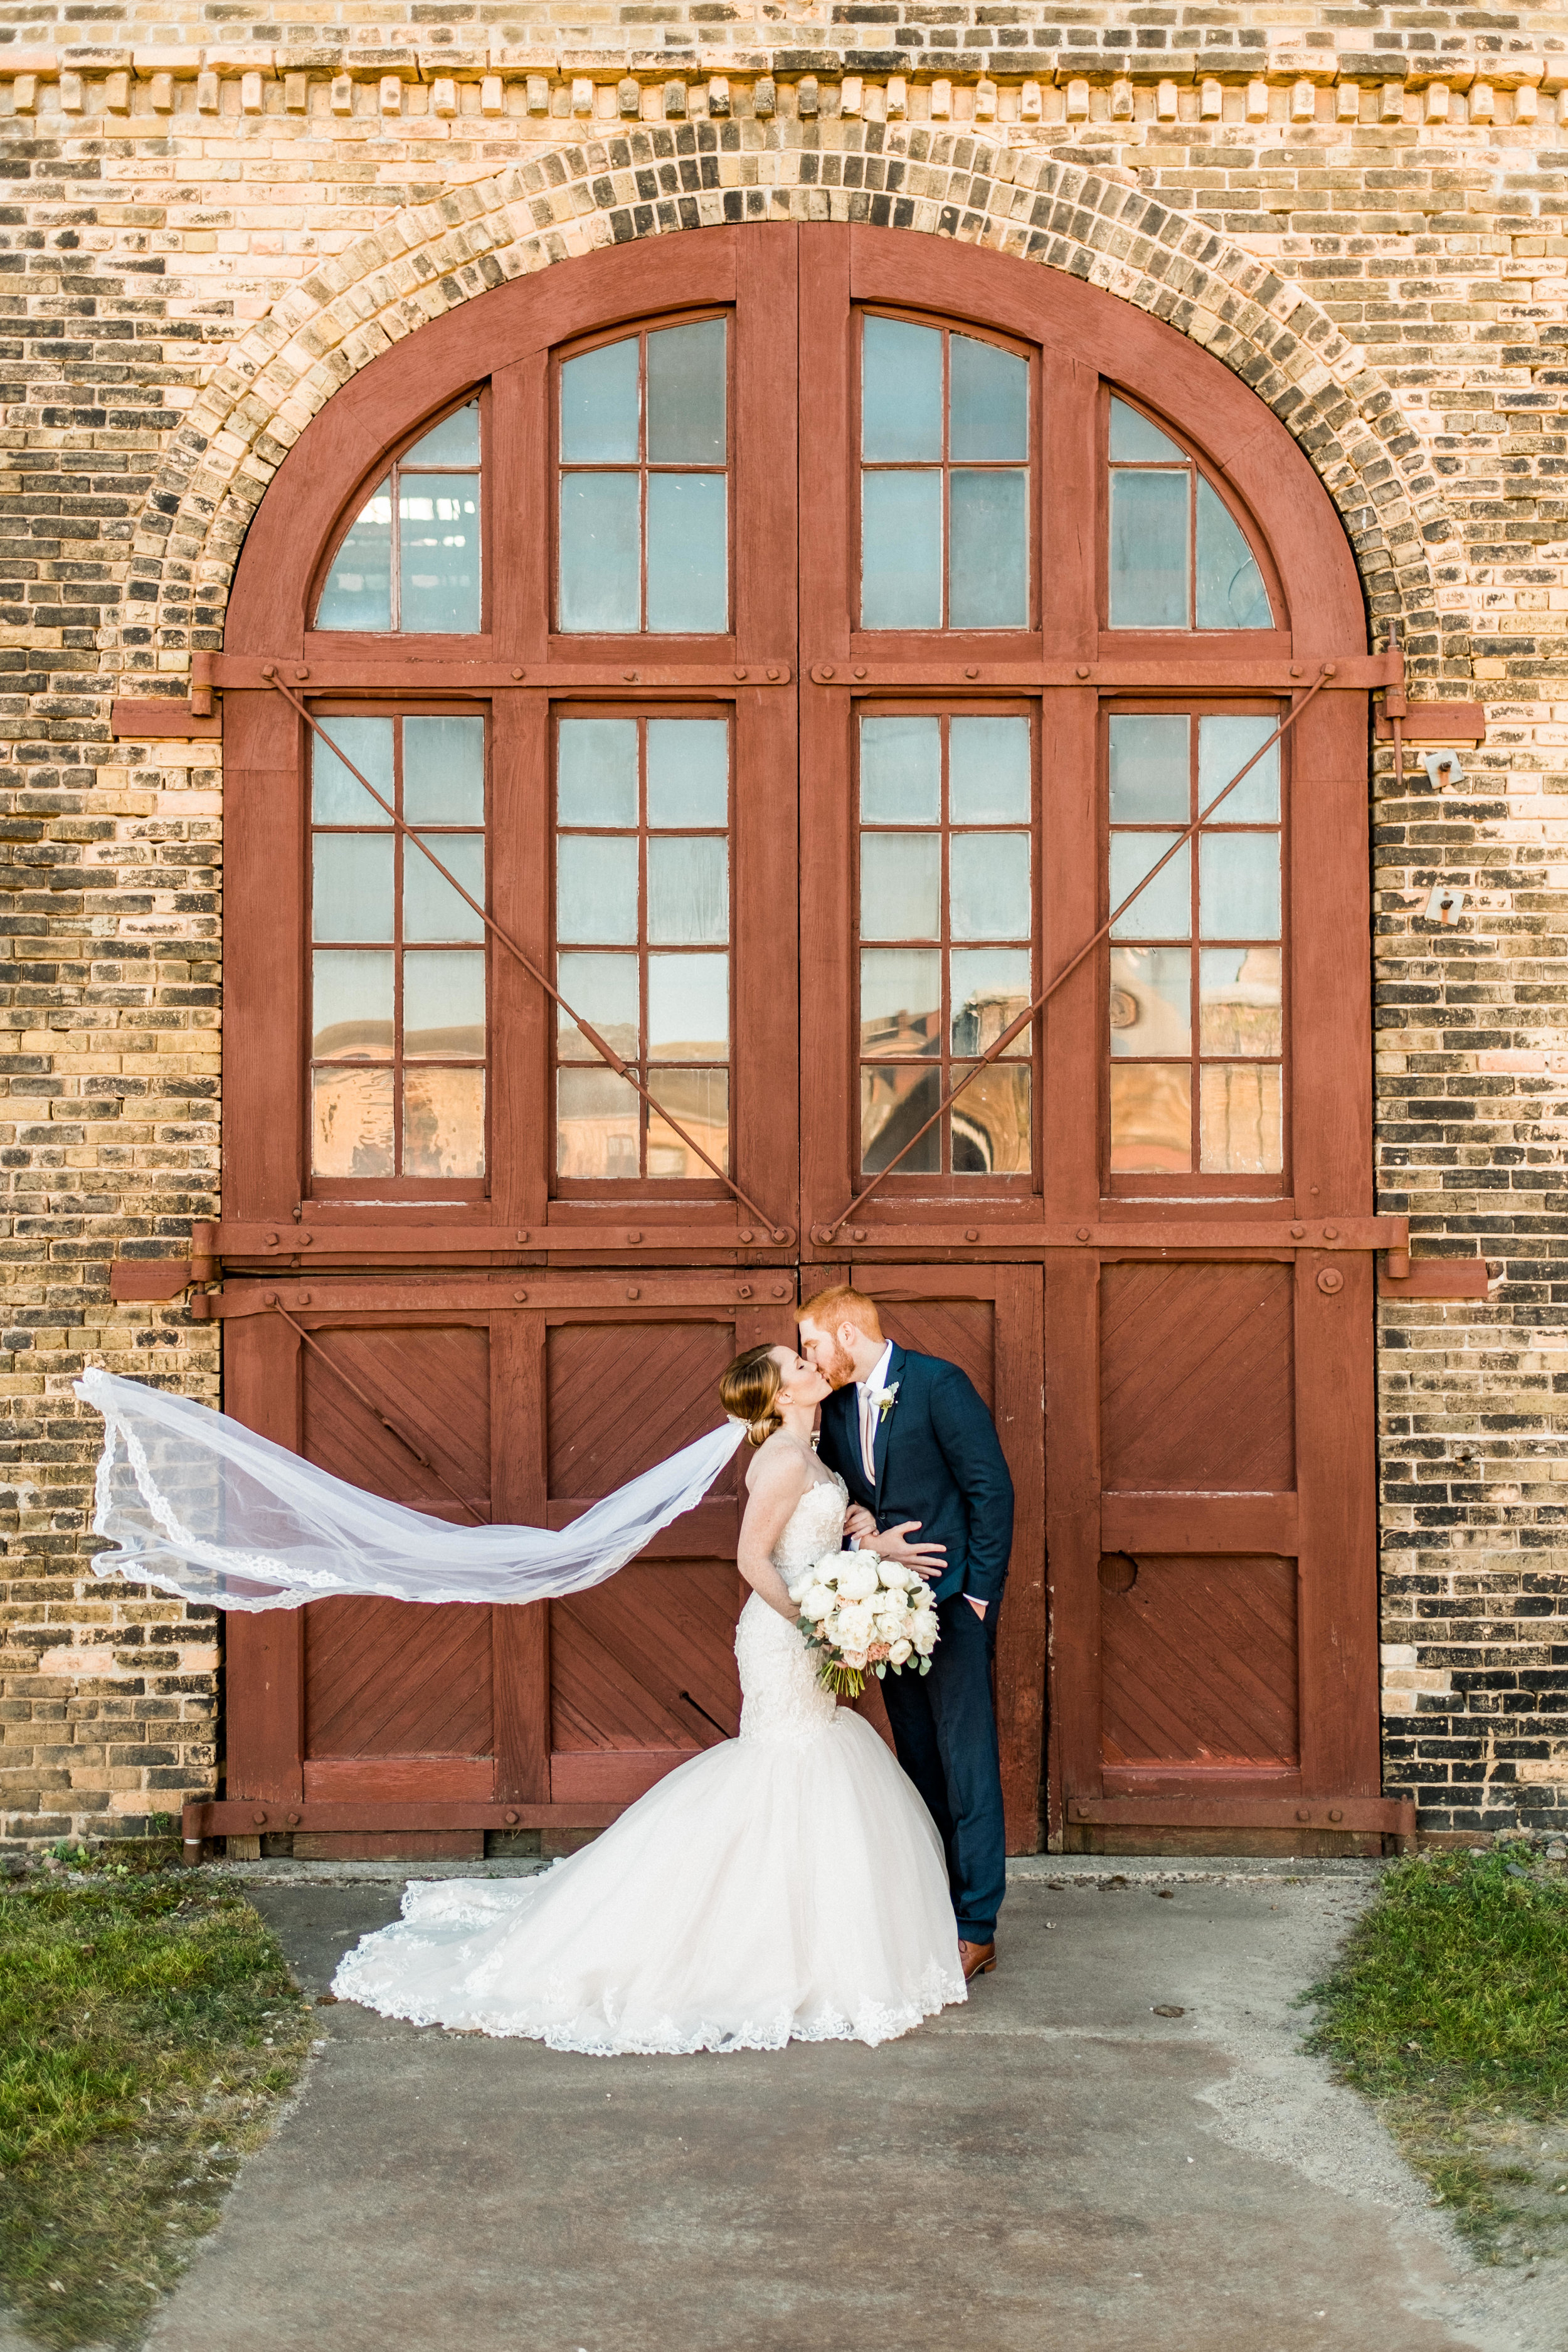 wedding image in front of the historic northern pacific center